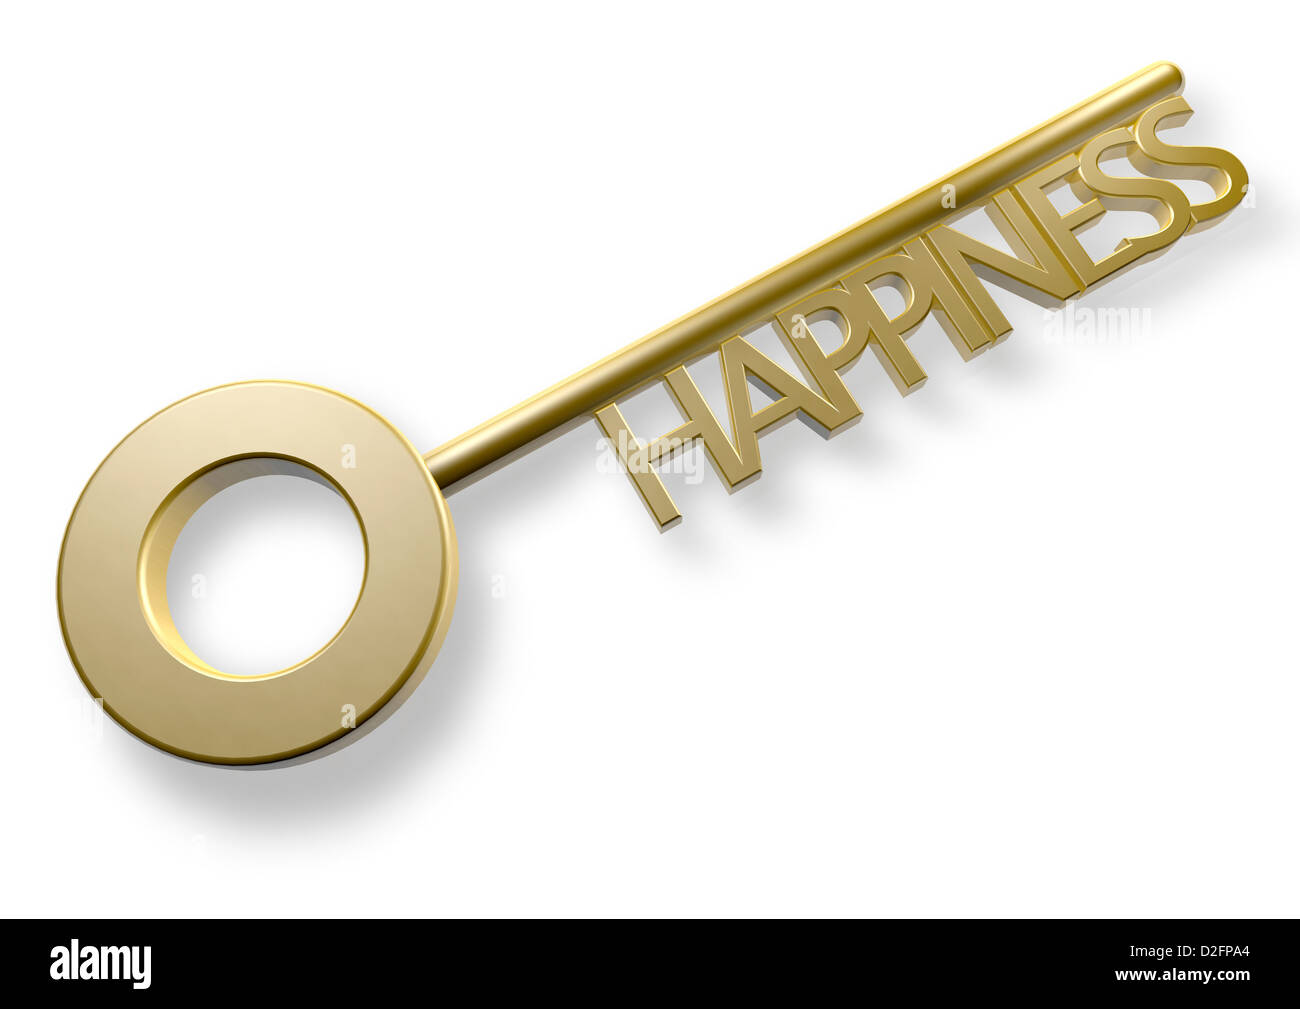 Gold key with the word HAPPINESS - Key to Happiness concept image - Stock Image